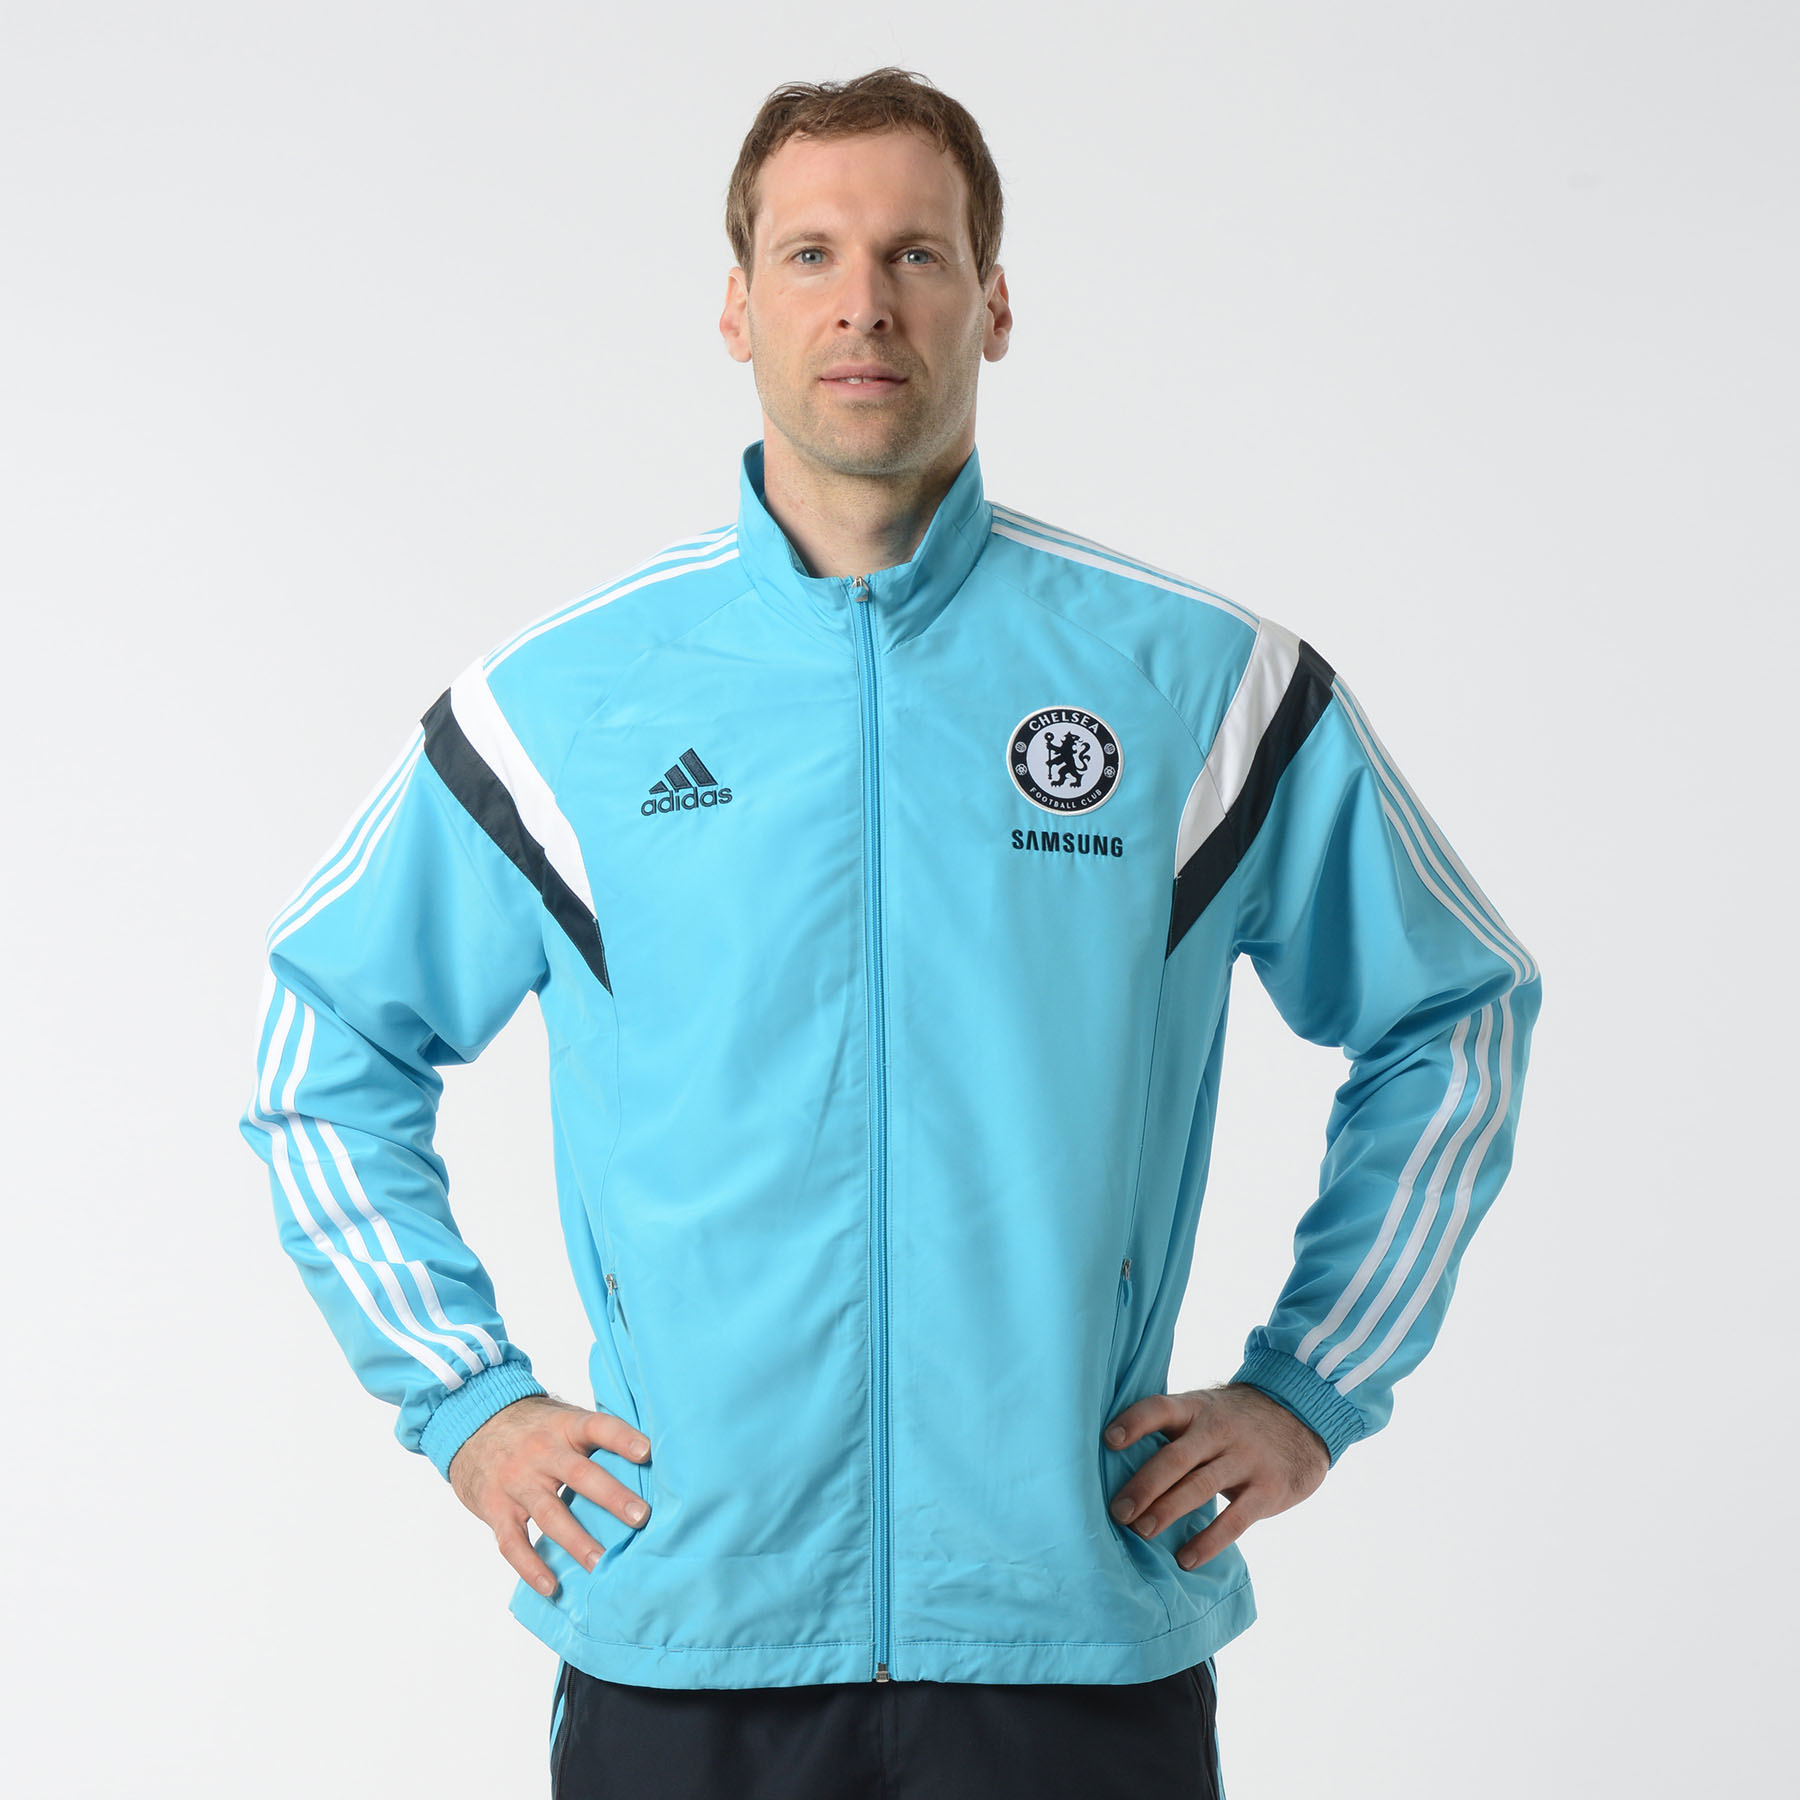 Chelsea Training Presentation Jacket Blue   Enjoy a great performance every time you play in this Chelsea Presentation Jacket. Styled with a woven Chelsea club crest and adidas three stripe logo, this blue presentation jacket was designed with style in mind.   Featuring a zip front, elasticated cuffs and a full mesh lining, this comfortable and lightweight Chelsea presentation suit is perfect whether you're training or traveling down to Stamford Bridge.   Benefits of this Chelsea presentation suit •Built with a full mesh lining which lifts the fabric away from the skin's surface and allows the air to circulate around the body •Zip front •Elasticated cuffs •Team crest and adidas logo for team pride and style